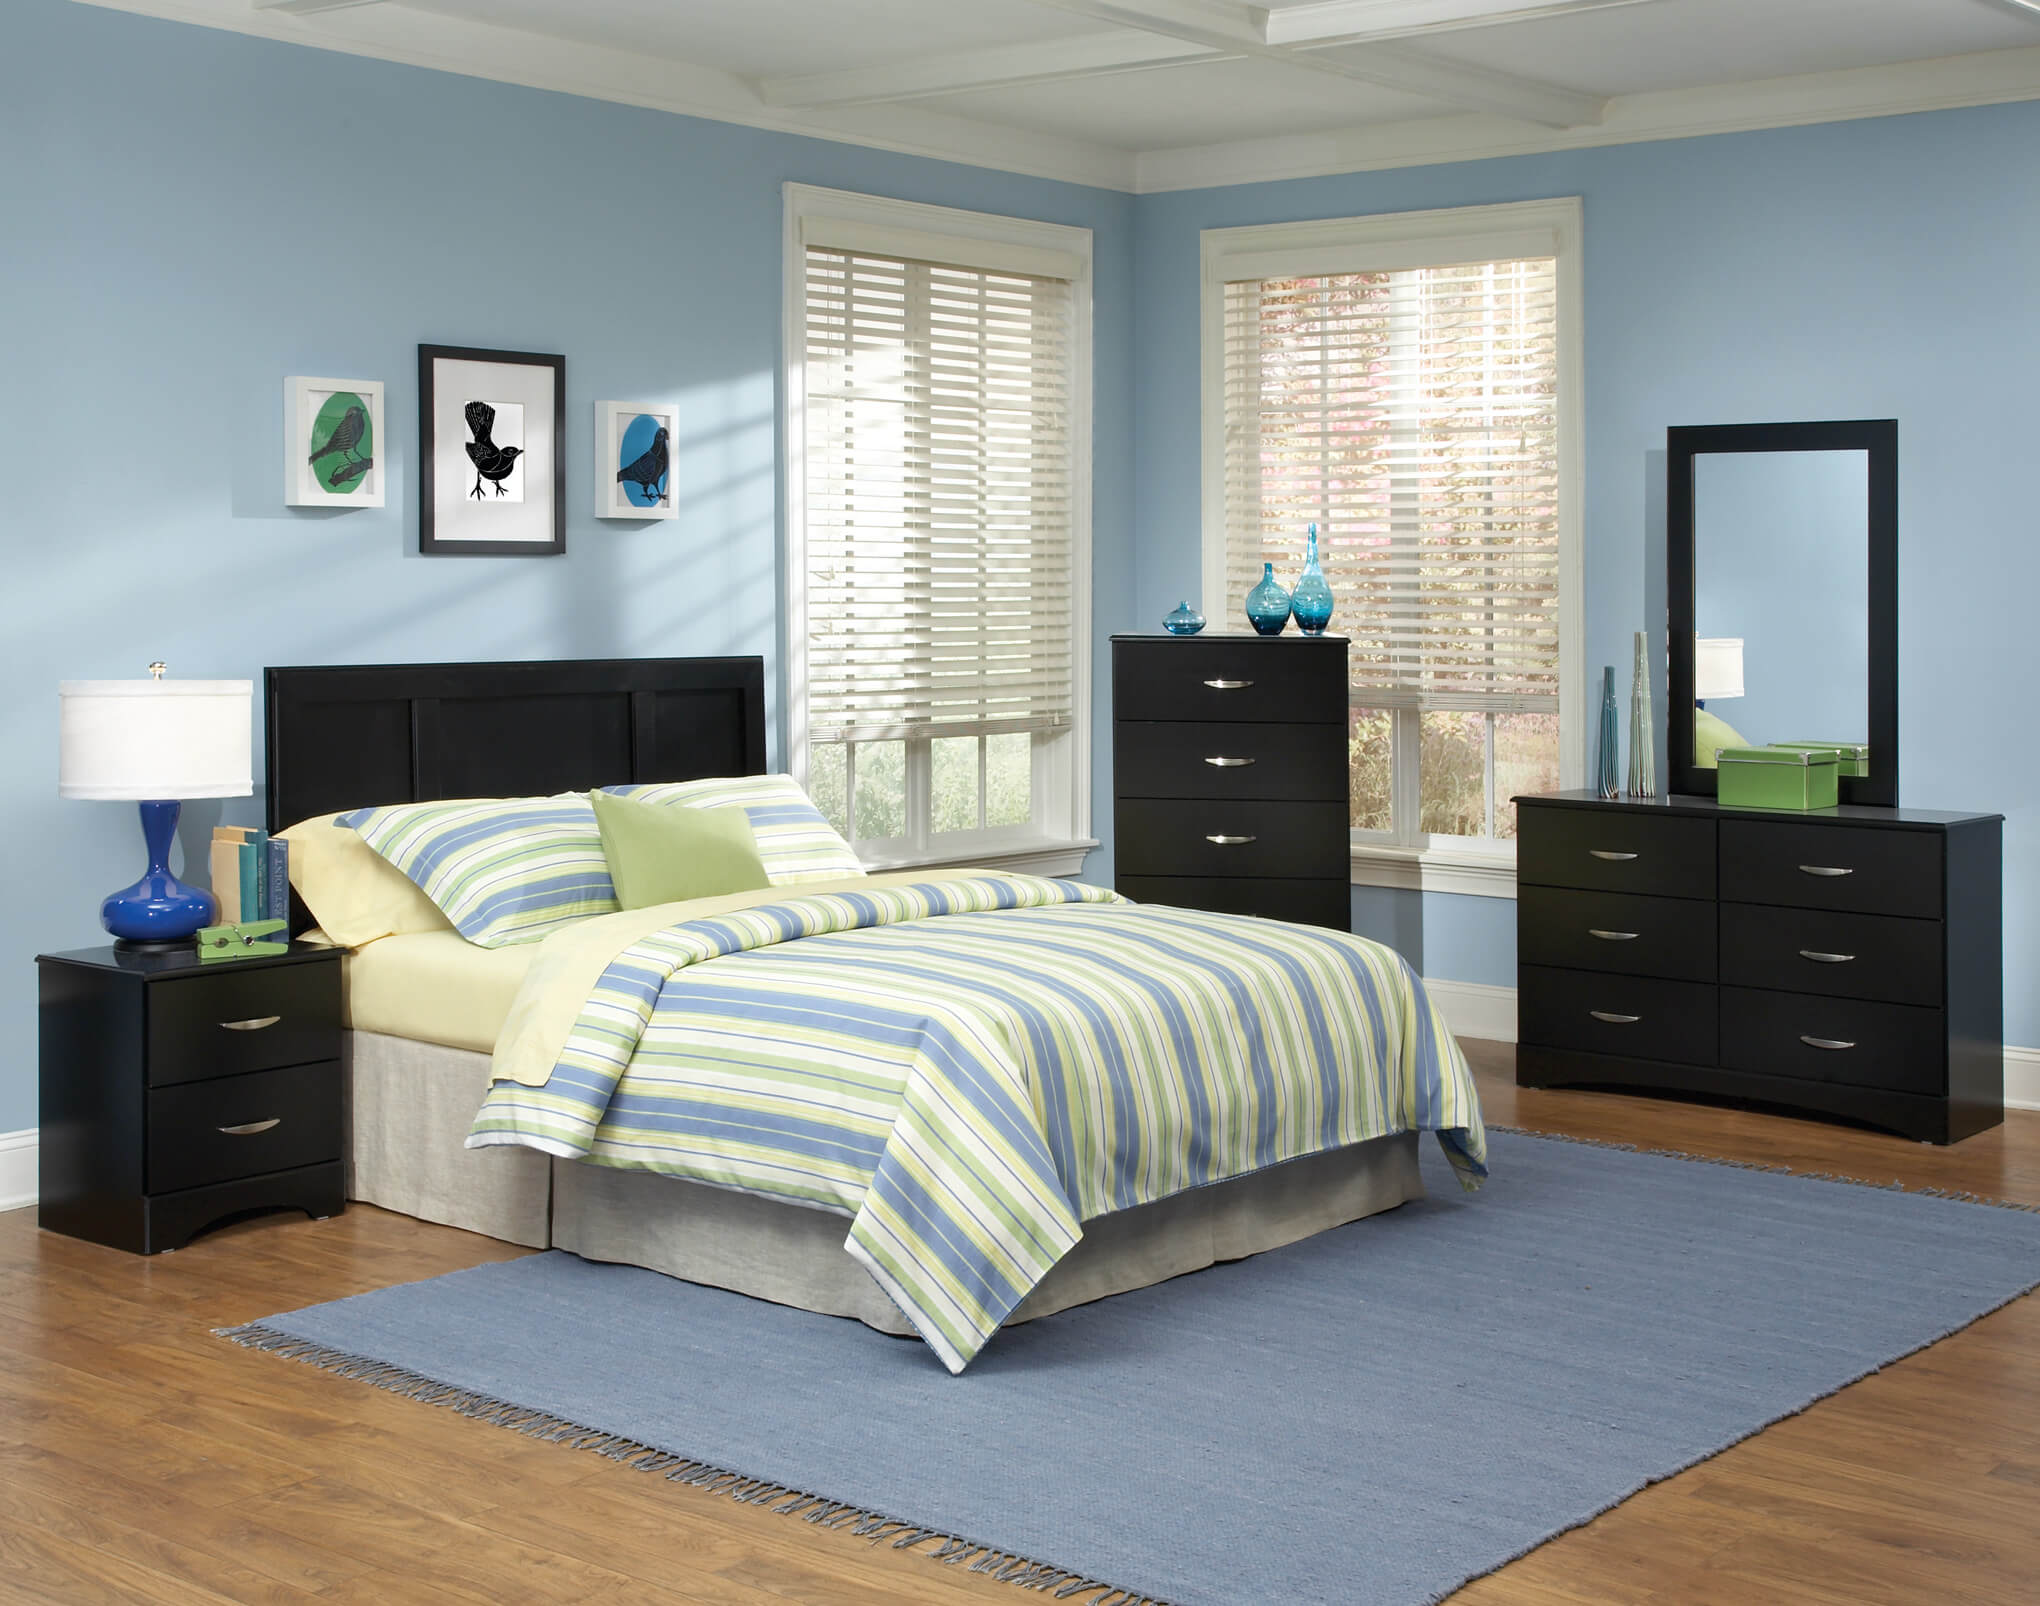 Kith Jacob Black Bedroom Set | Bedroom Furniture Sets